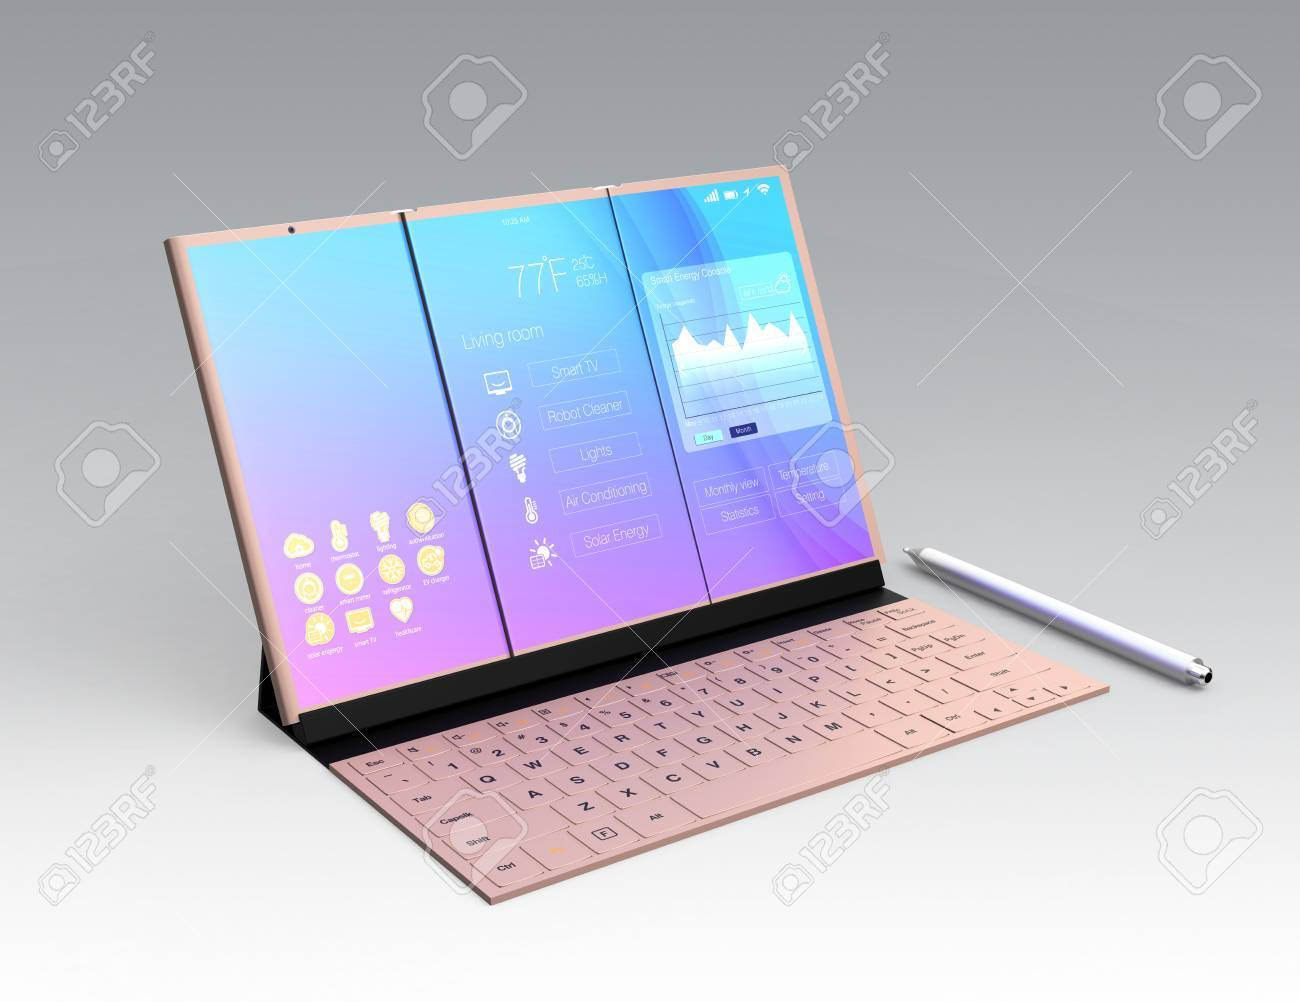 Marvelous Digital Pen And Tablet Pc Which Docking On Detachable Mobile Download Free Architecture Designs Itiscsunscenecom